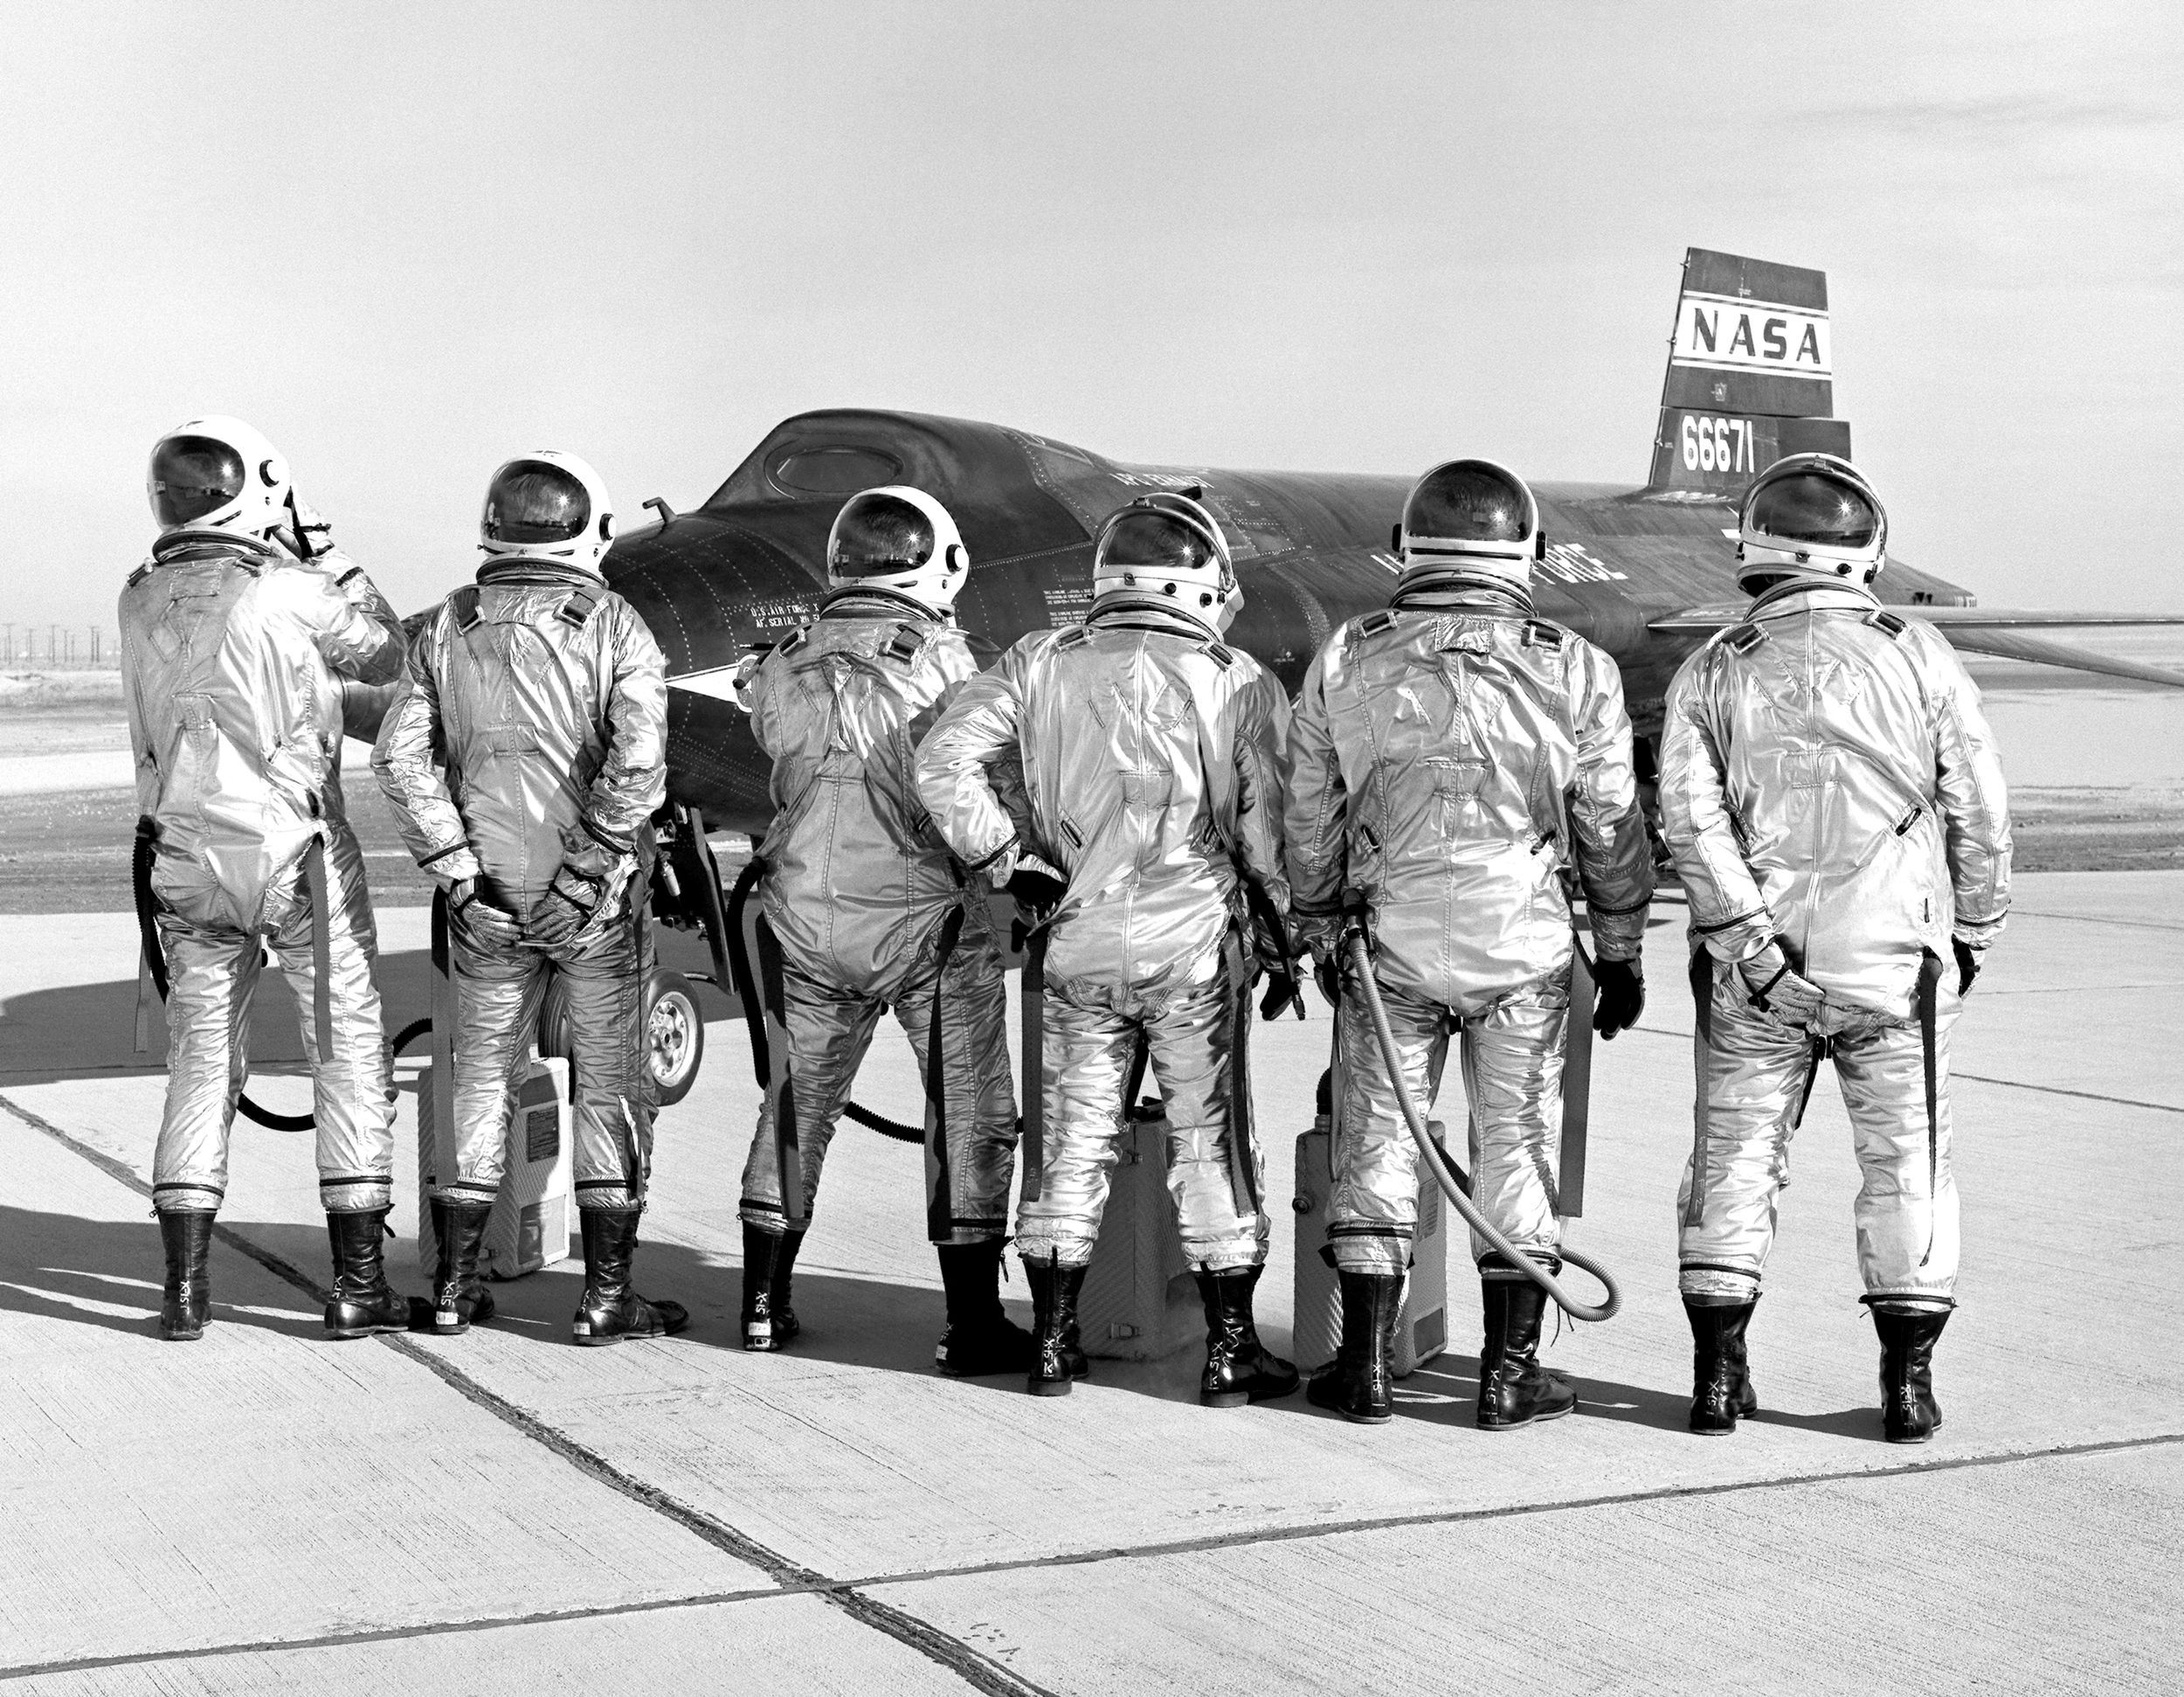 X-15 pilots in a lighter mood